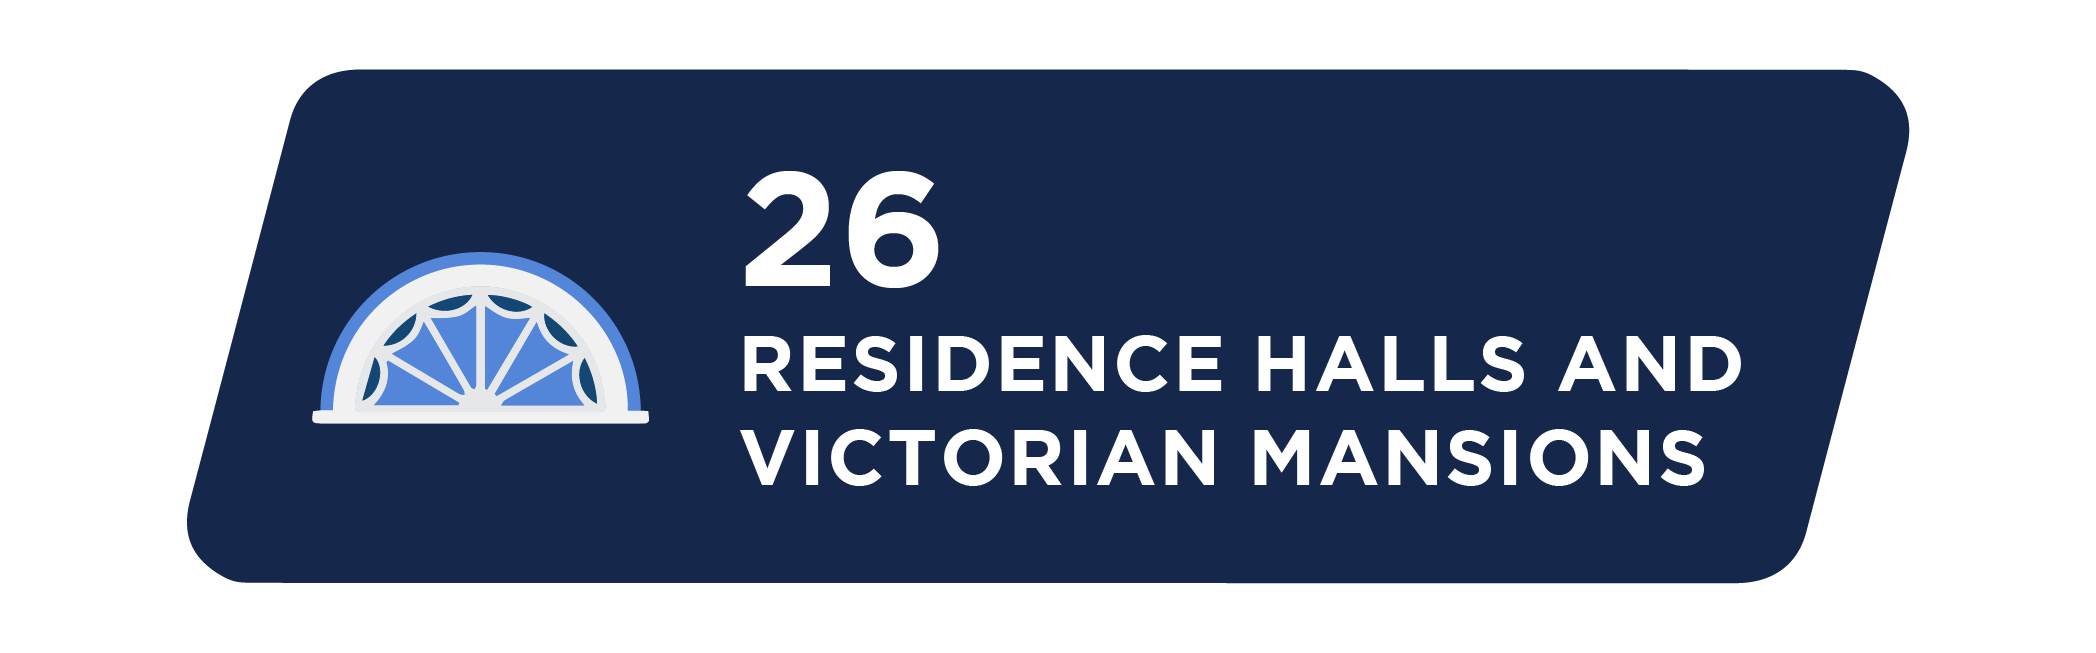 27 residence halls and Victorian mansions